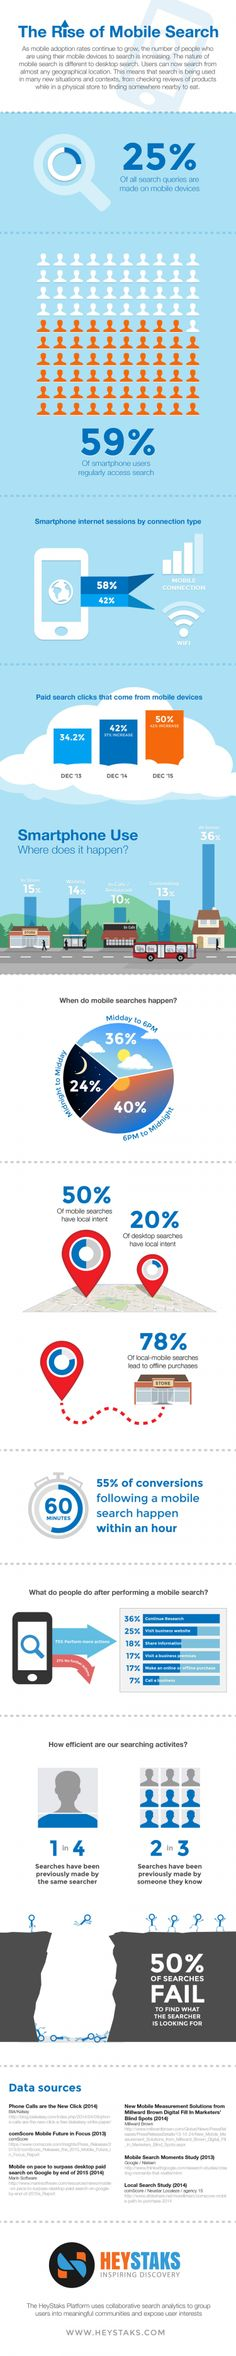 The Rise of #Mobile Search